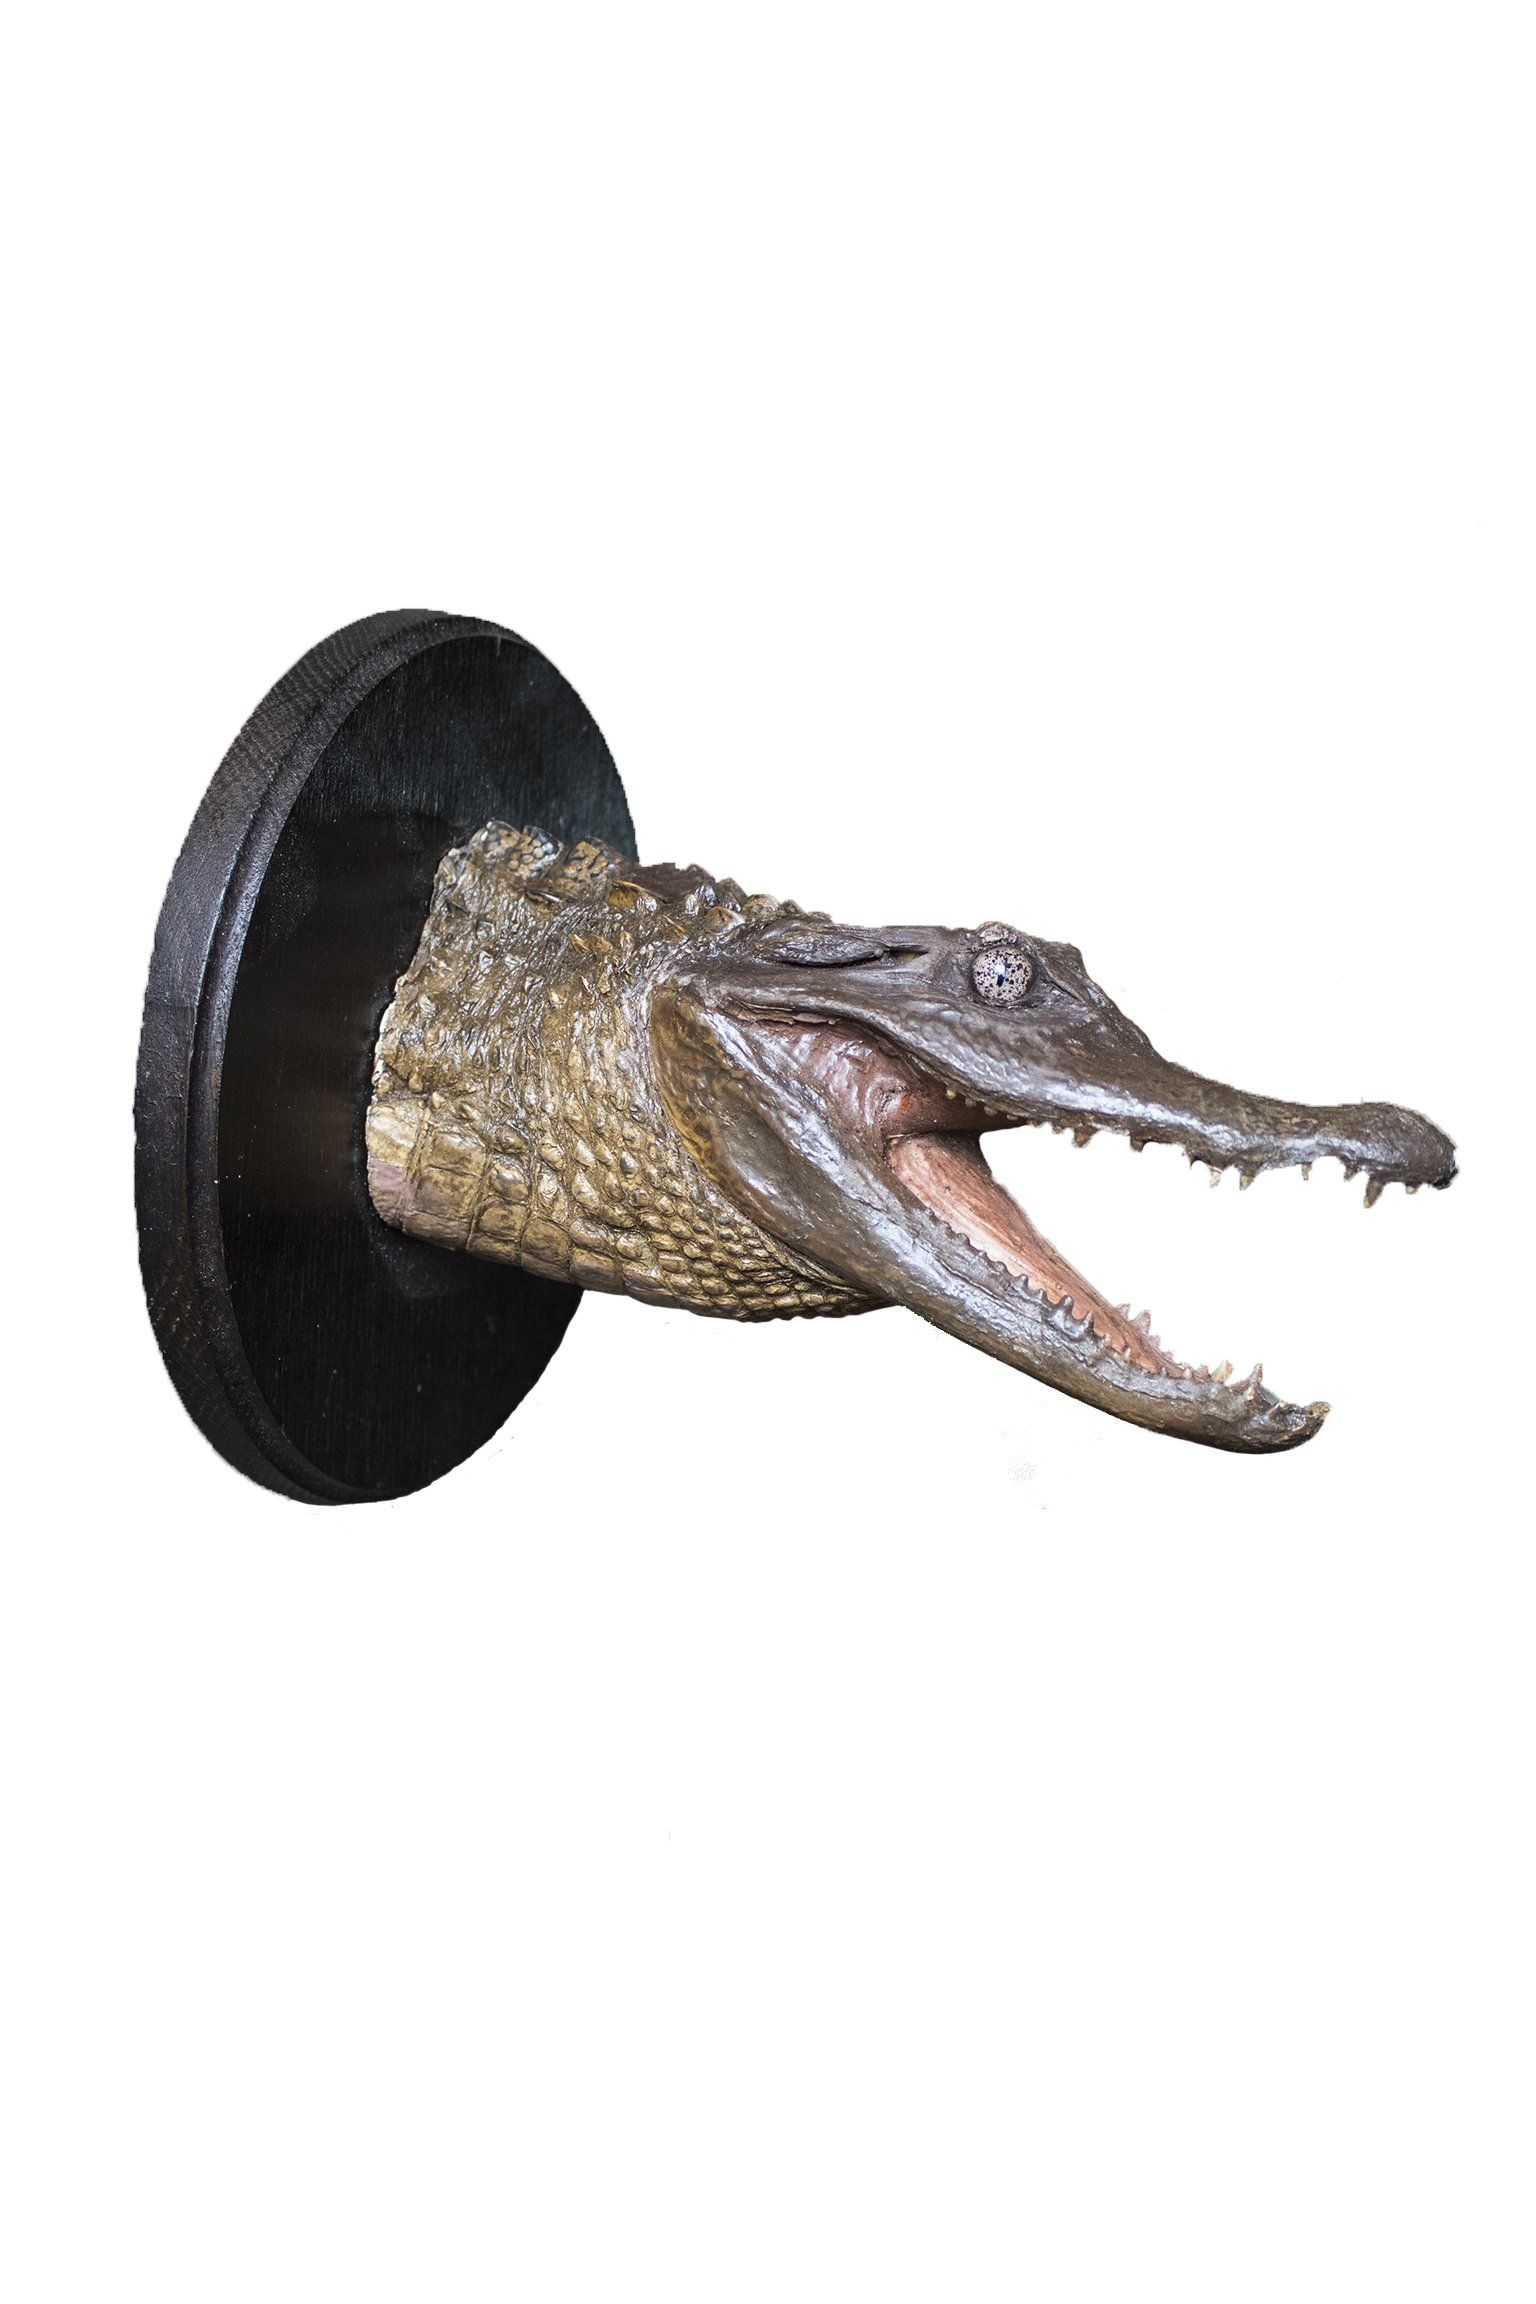 Taxidermy Crocodile Head Mount